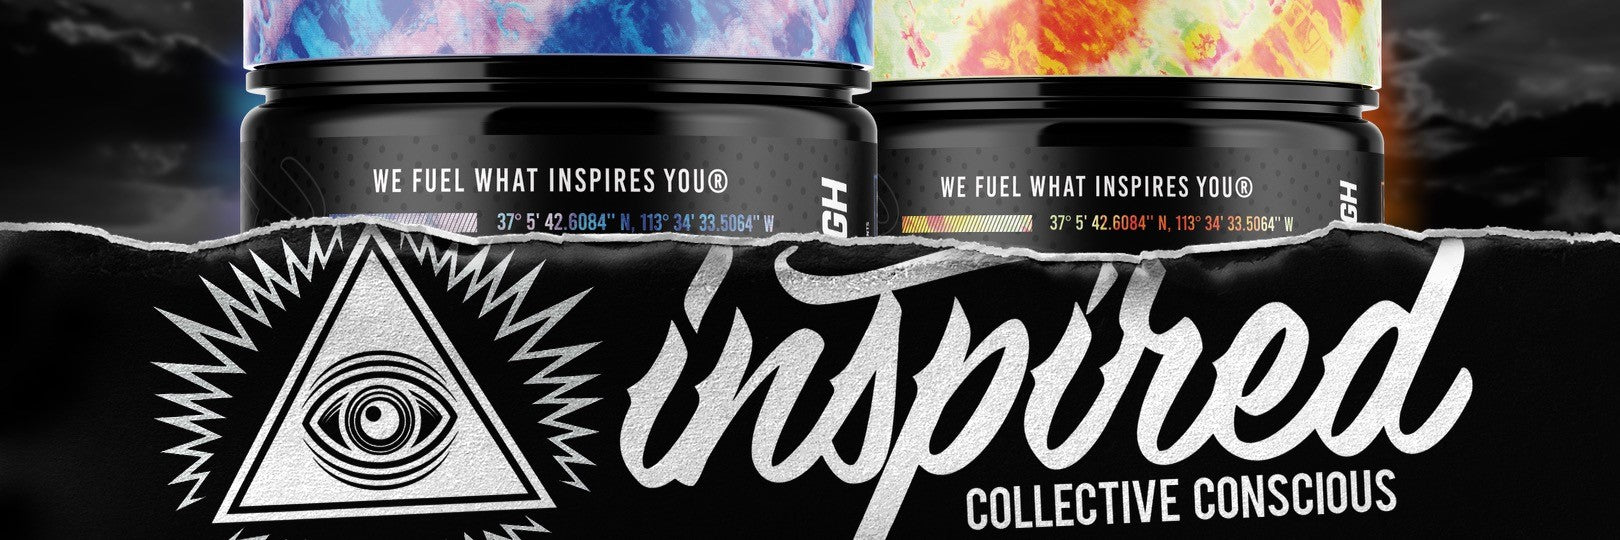 Inspired Nutraceuticals Collective Conscious